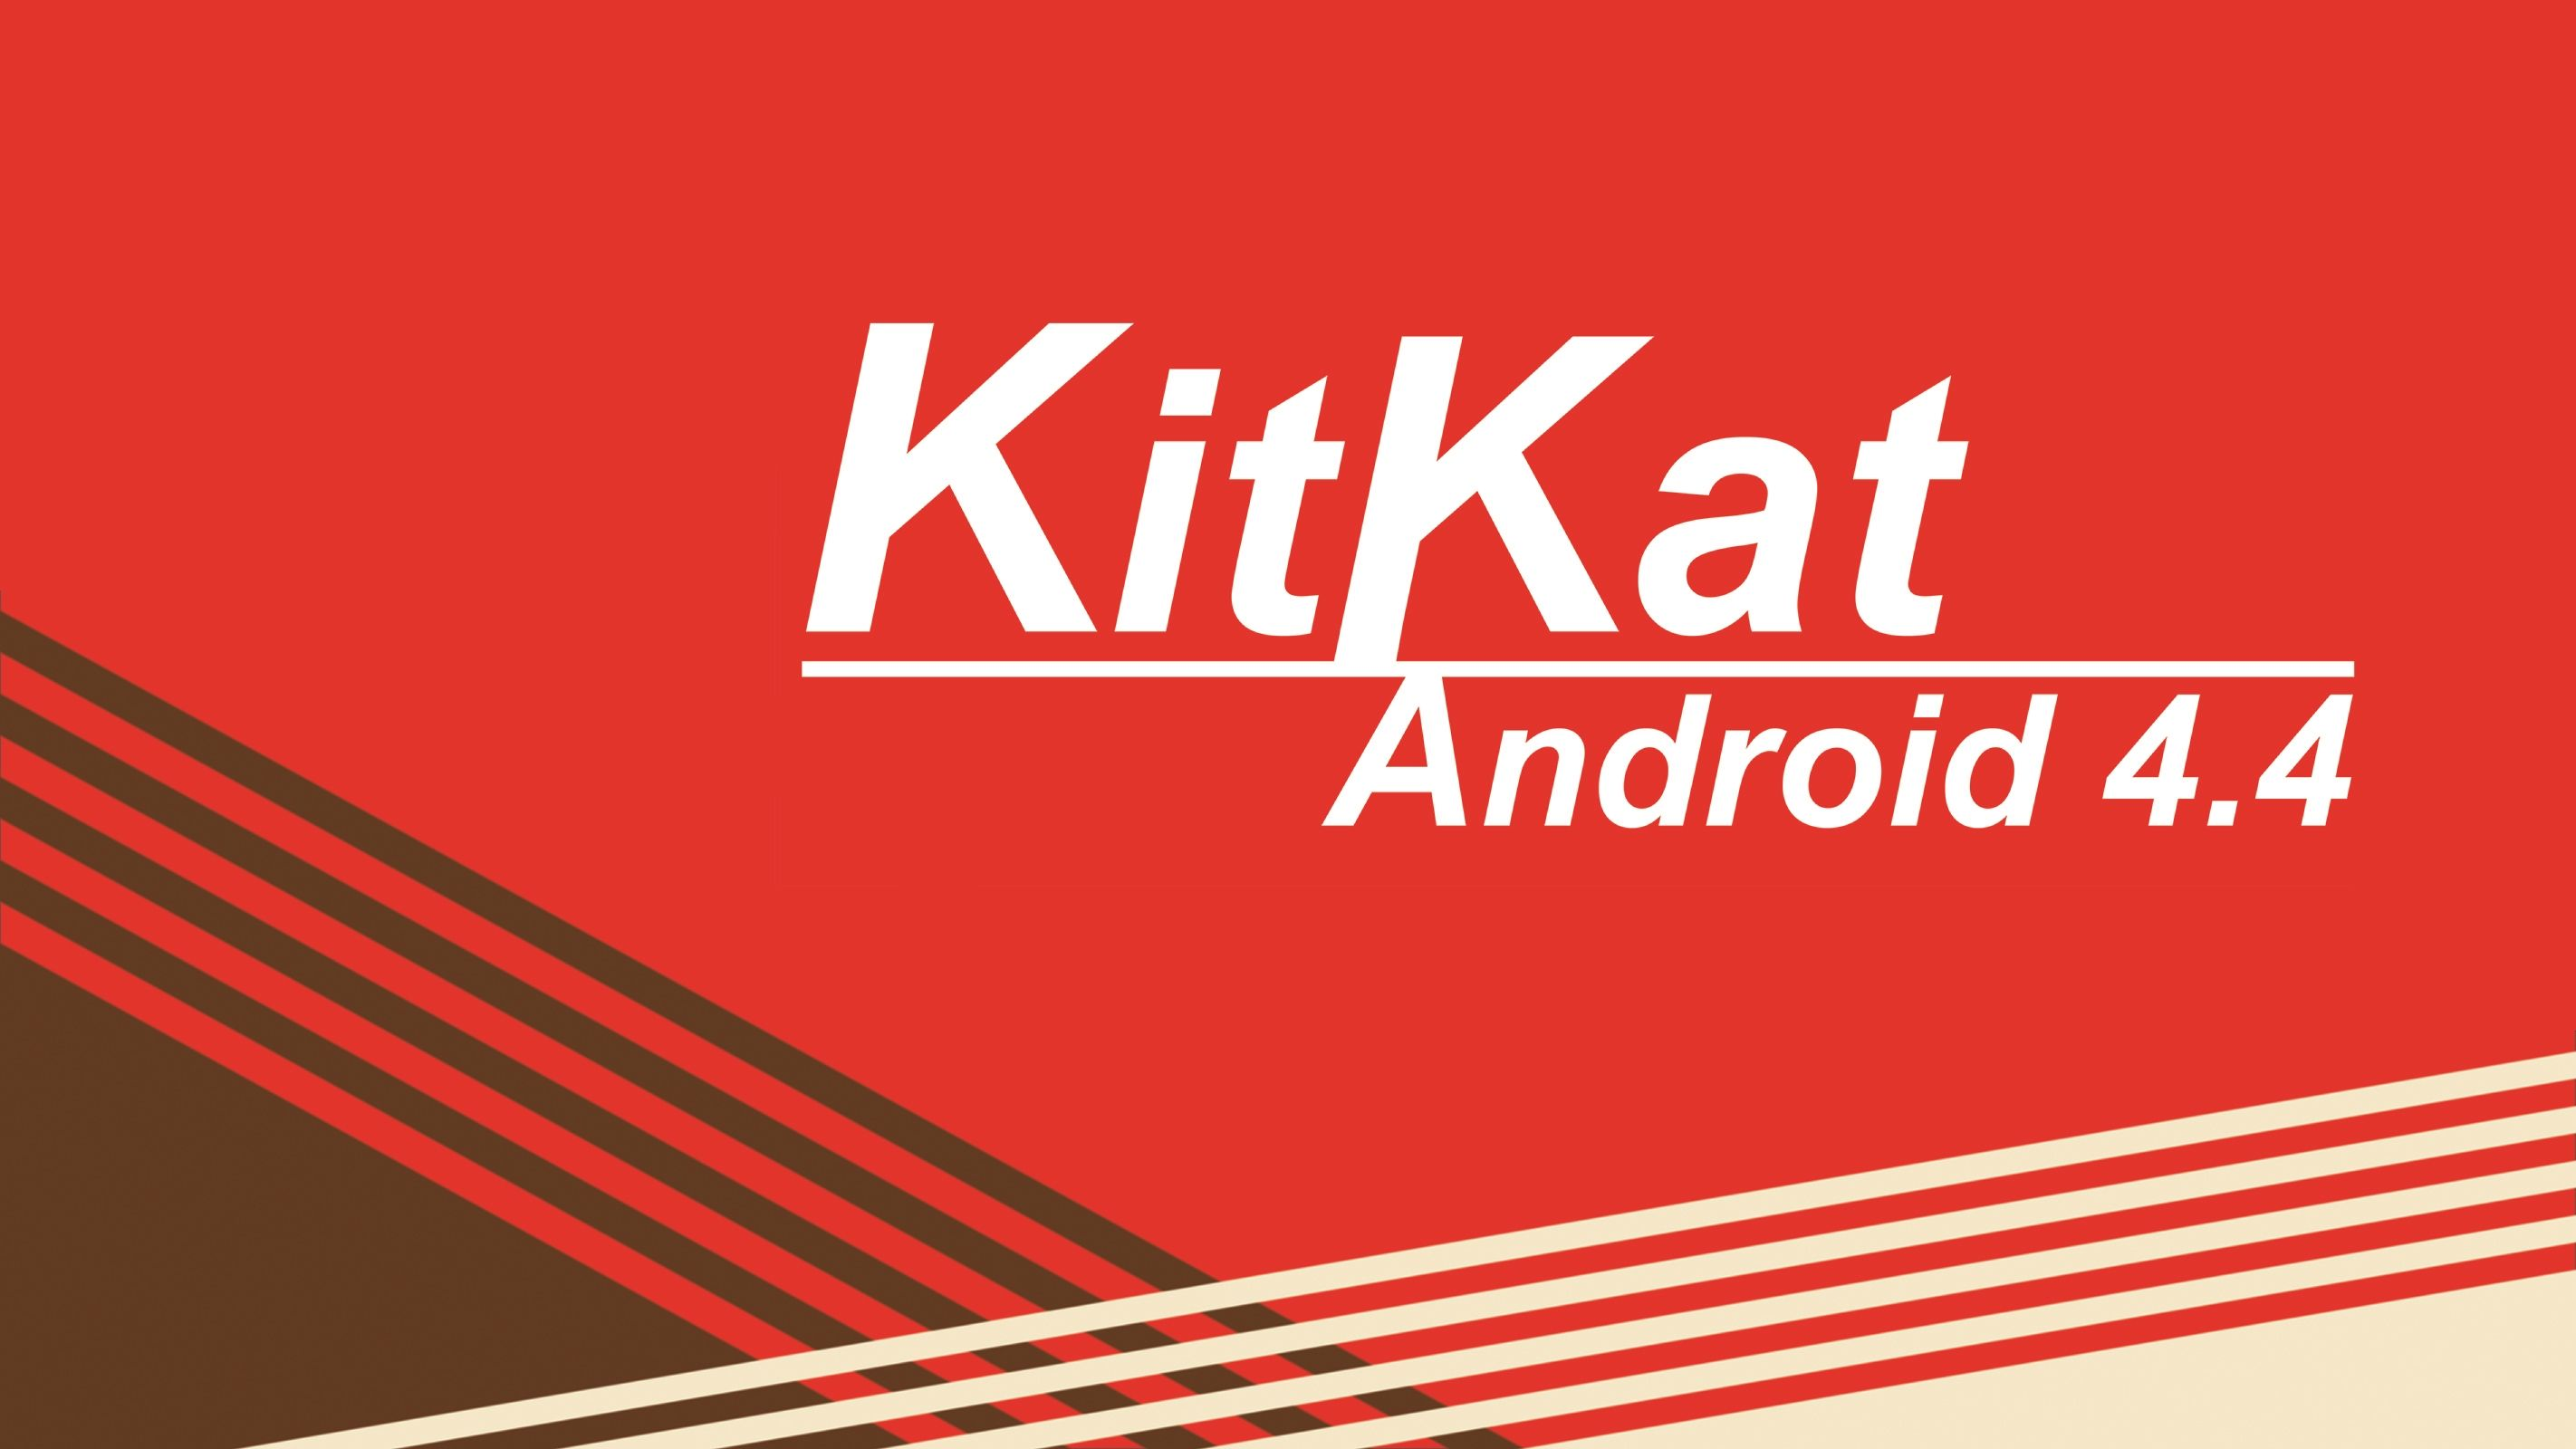 Kitkat android wallpaper